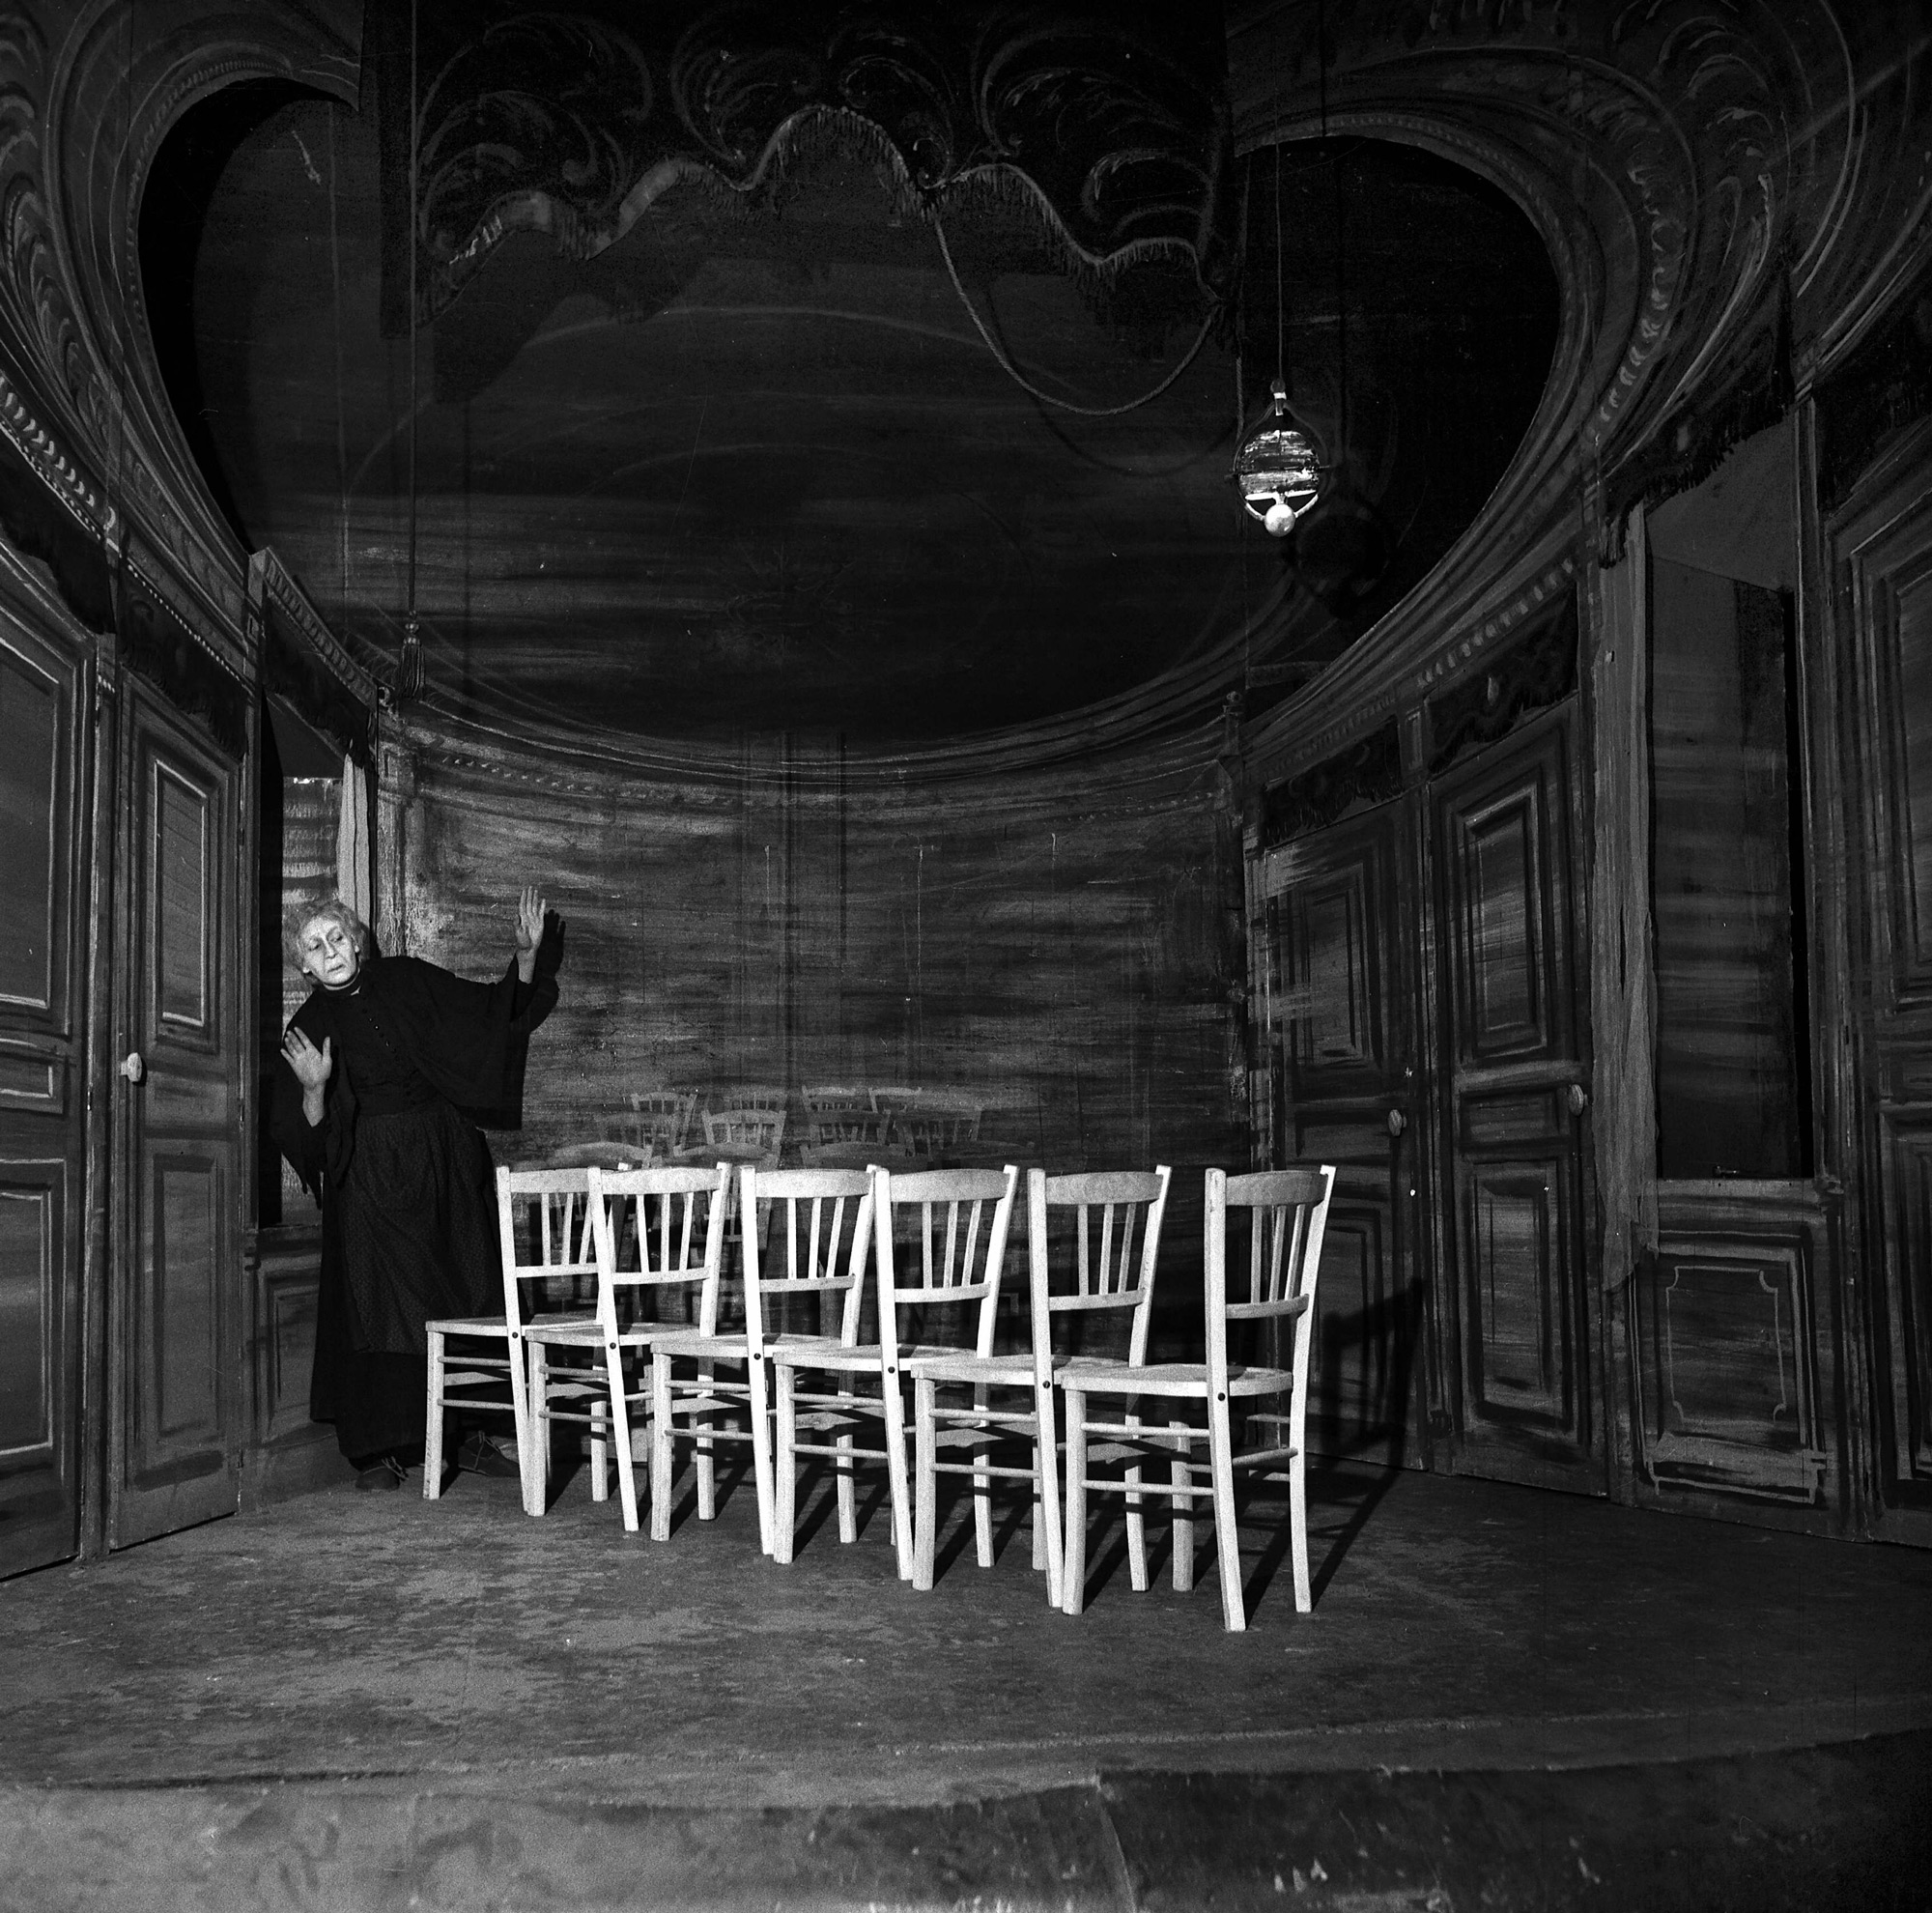 Photograph of The Chairs by Eugene Ionesco, 1956